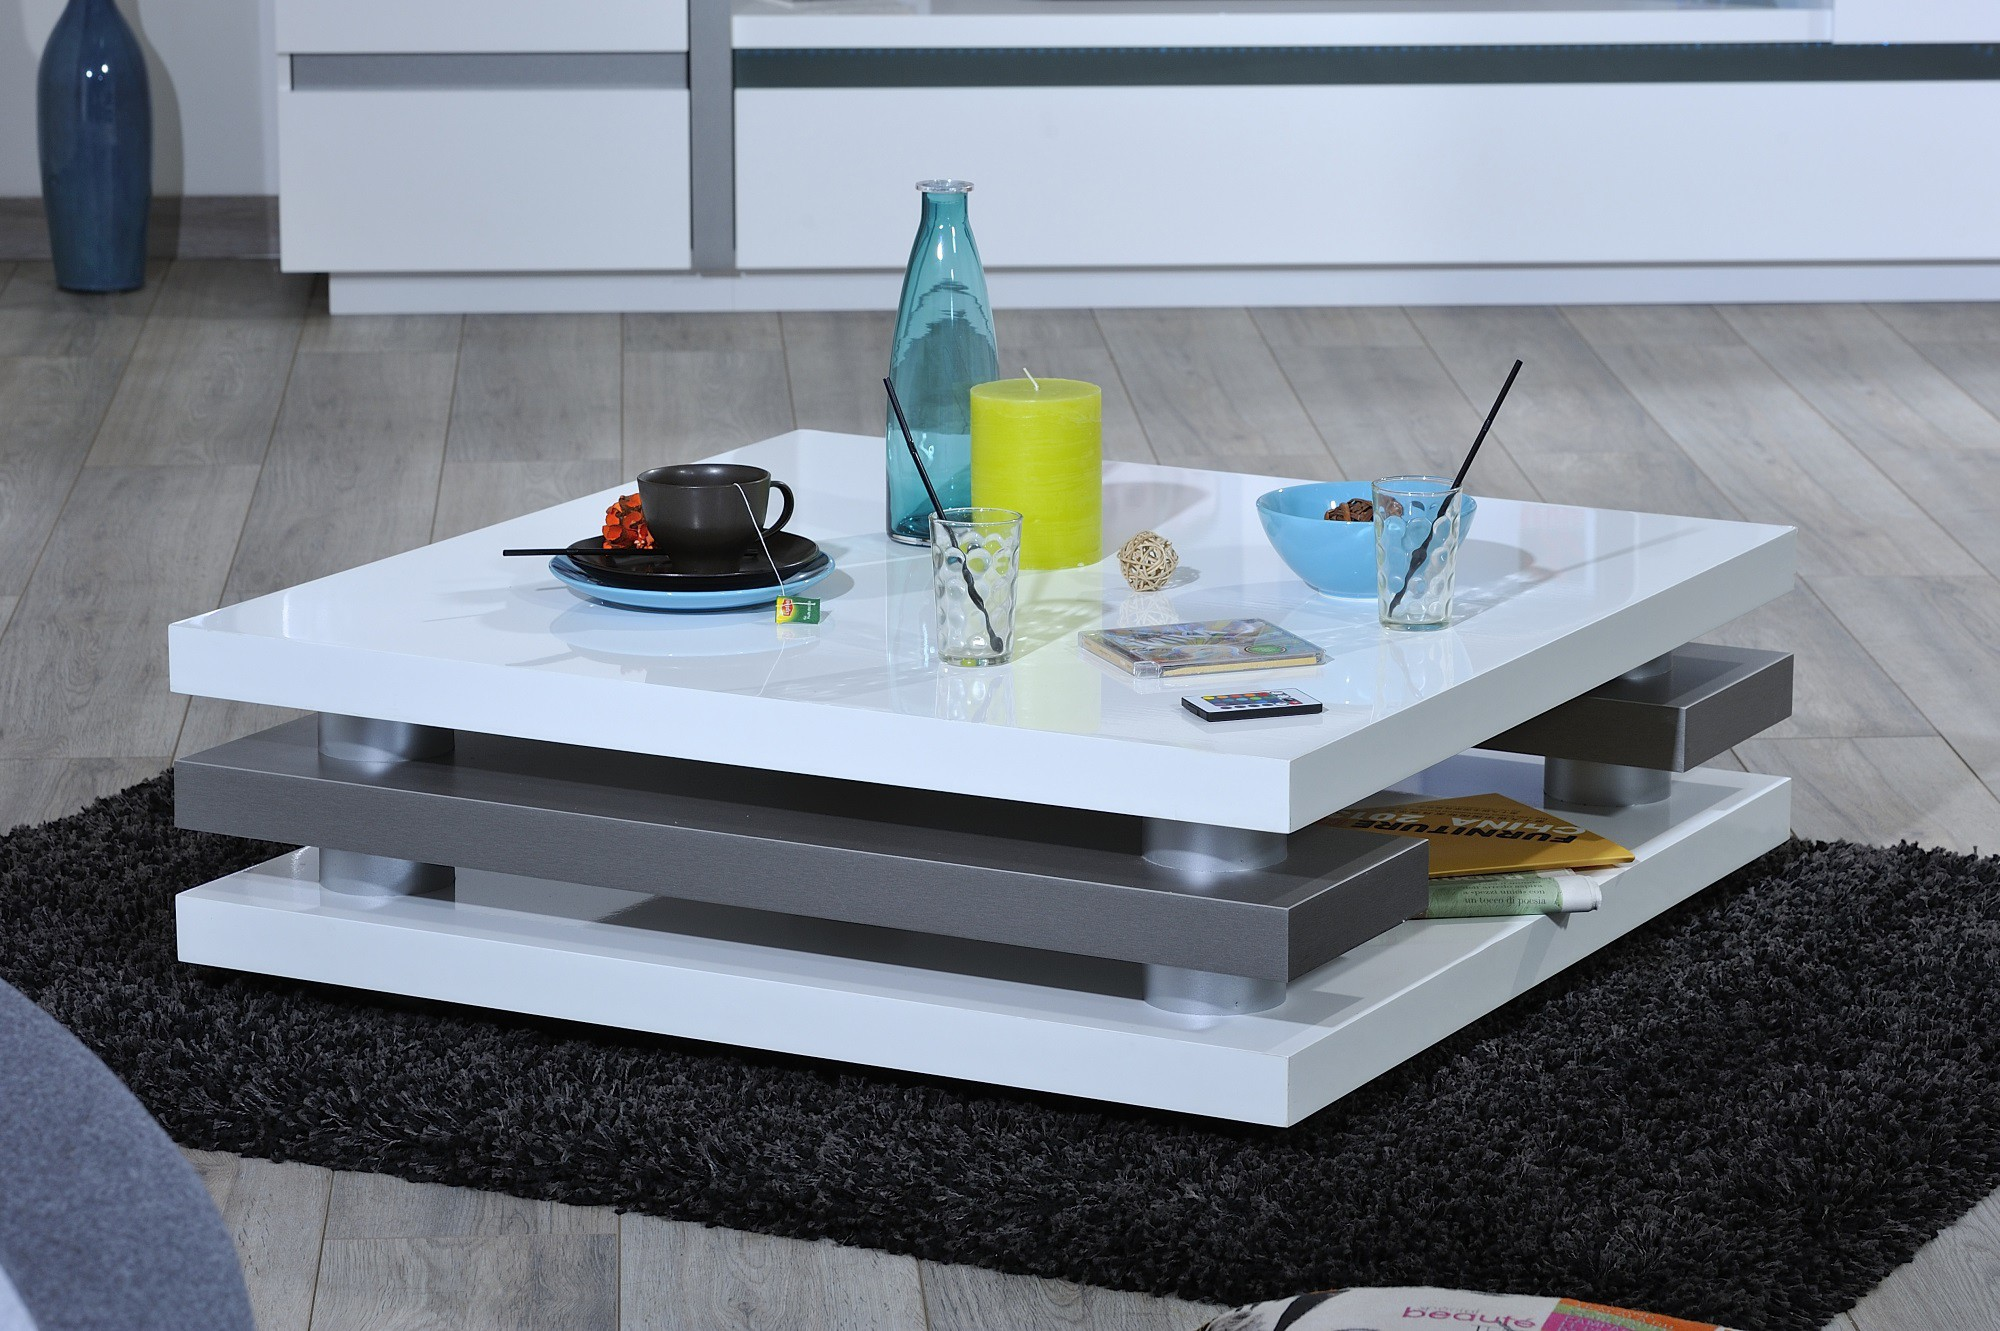 Table basse design pas cher belgique mobilier design for Mobilier design pas cher